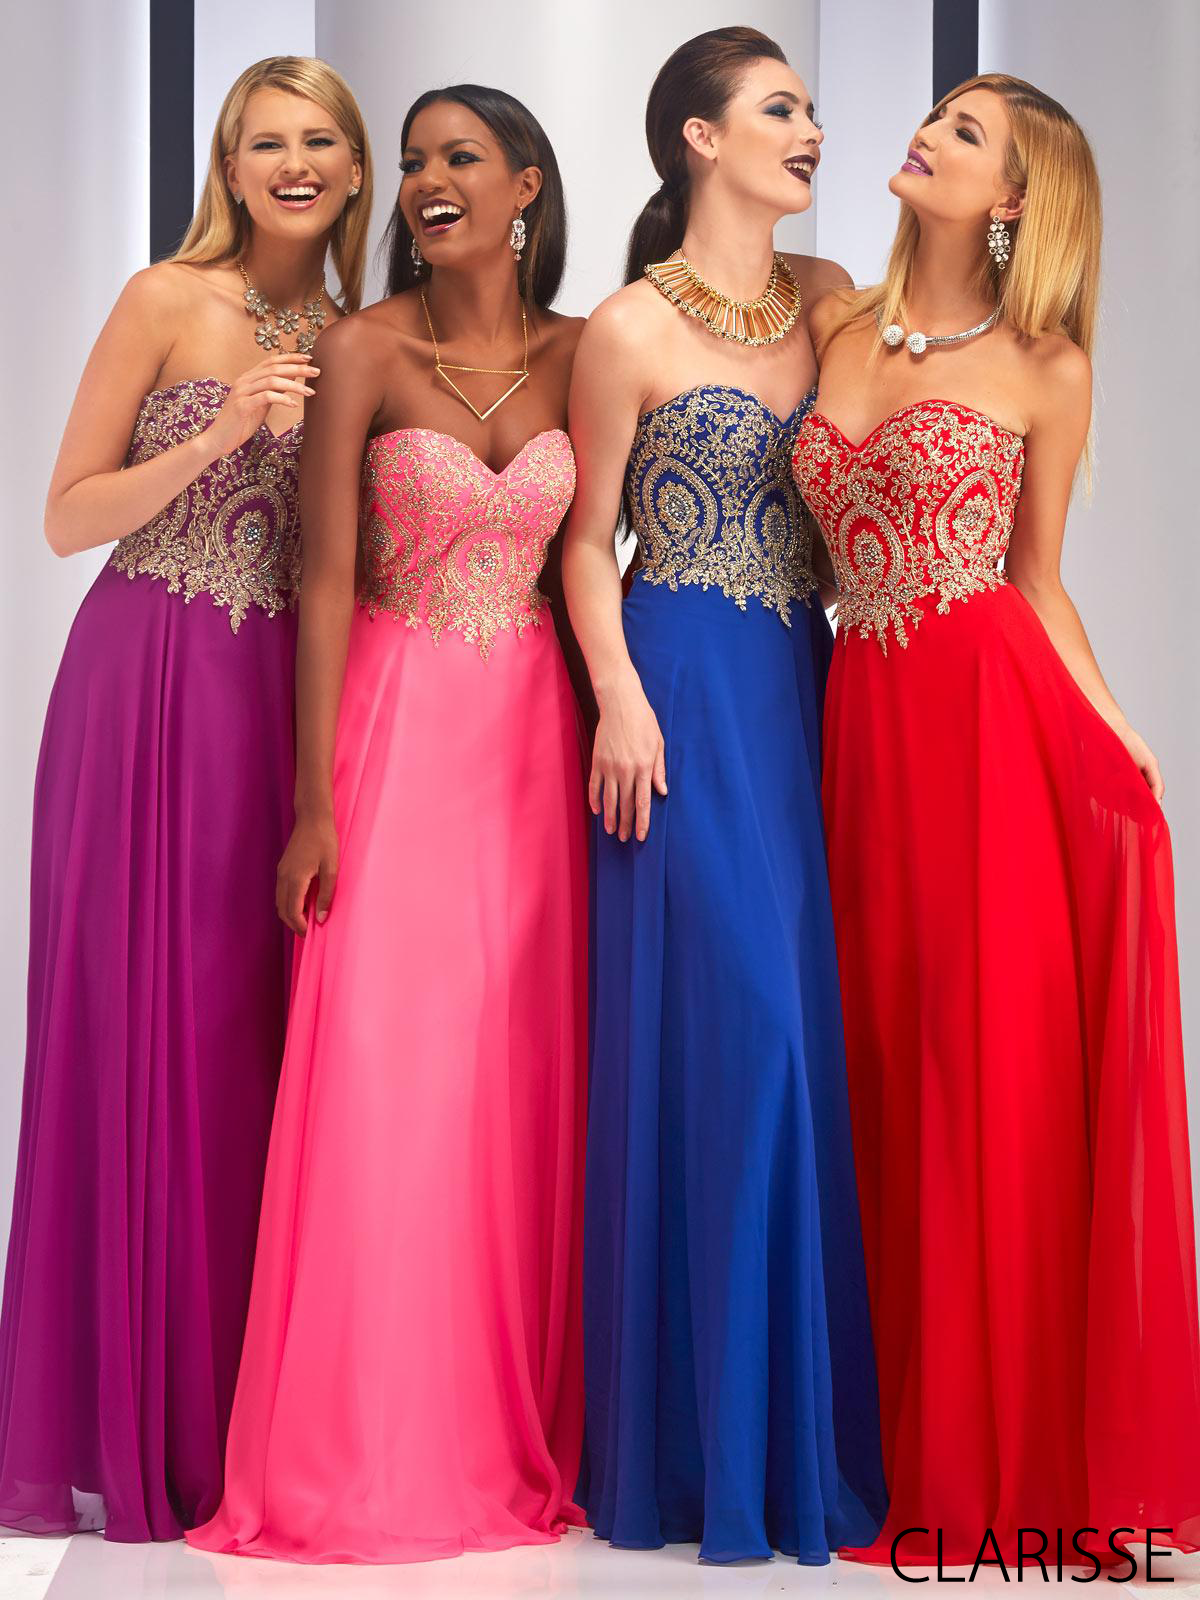 Black Chiffon Prom Gowns Pageanat